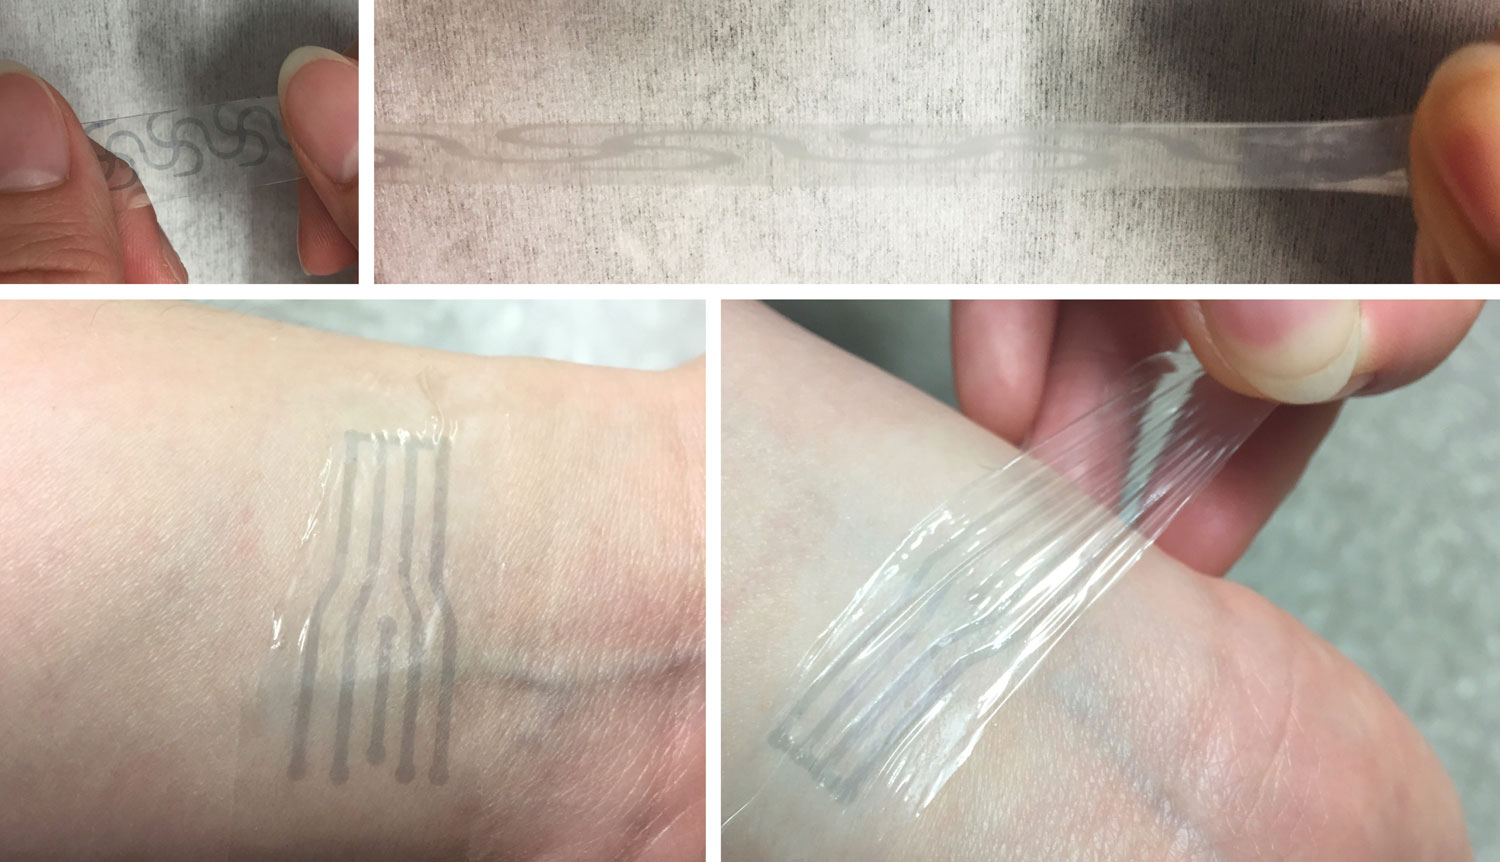 """A printed electrode pattern of the new polymer being stretched to several times of its original length (top), and a transparent, highly stretchy """"electronic skin"""" patch forming an intimate interface with the human skin to potentially measure various biomarkers (bottom)."""